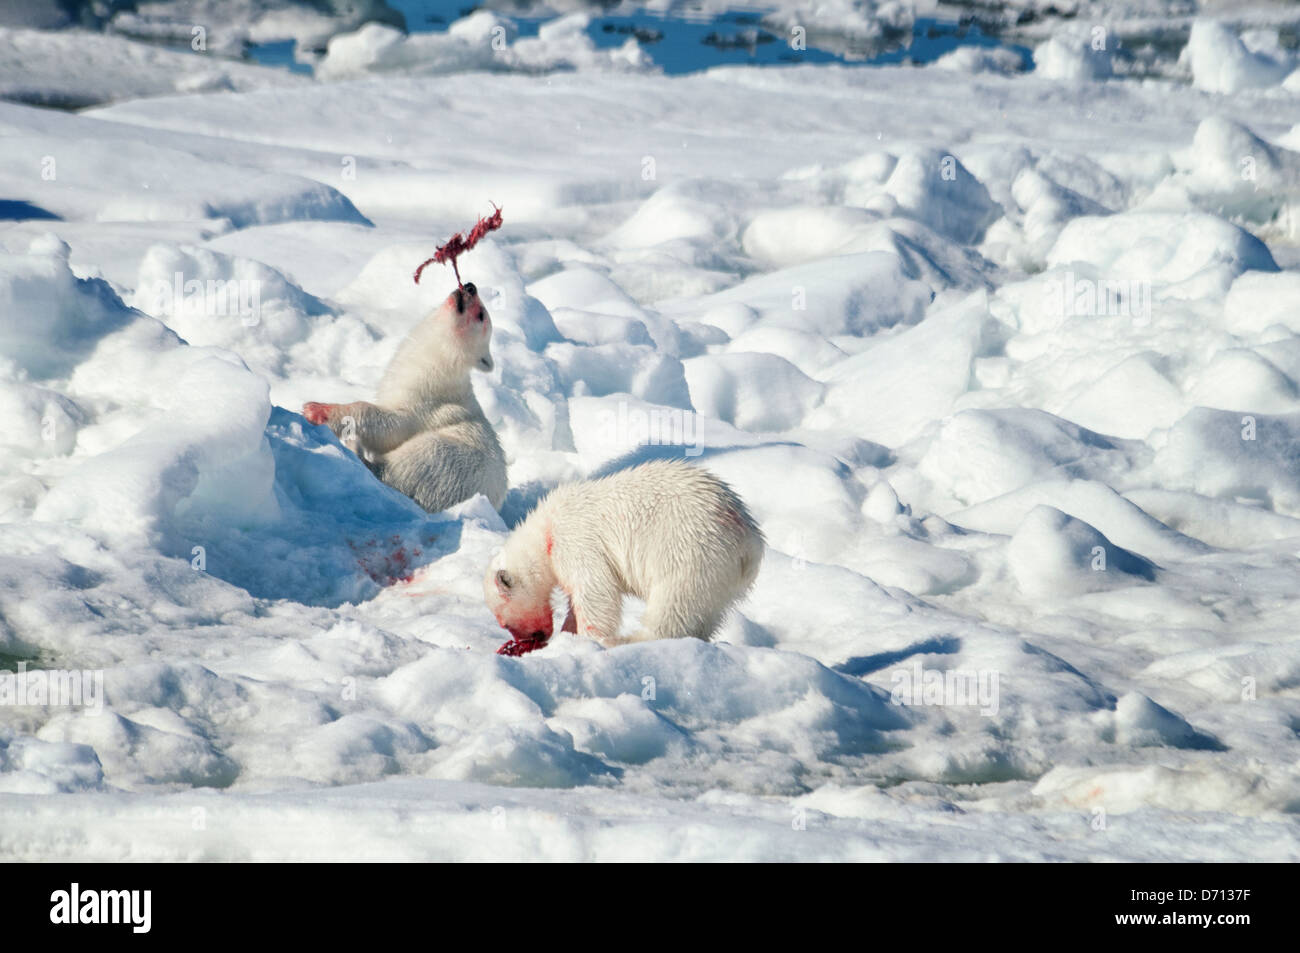 #10 in a series of images of a mother Polar Bear, Ursus maritimus, stalking a Seal to feed her twin Cubs, Svalbard, - Stock Image